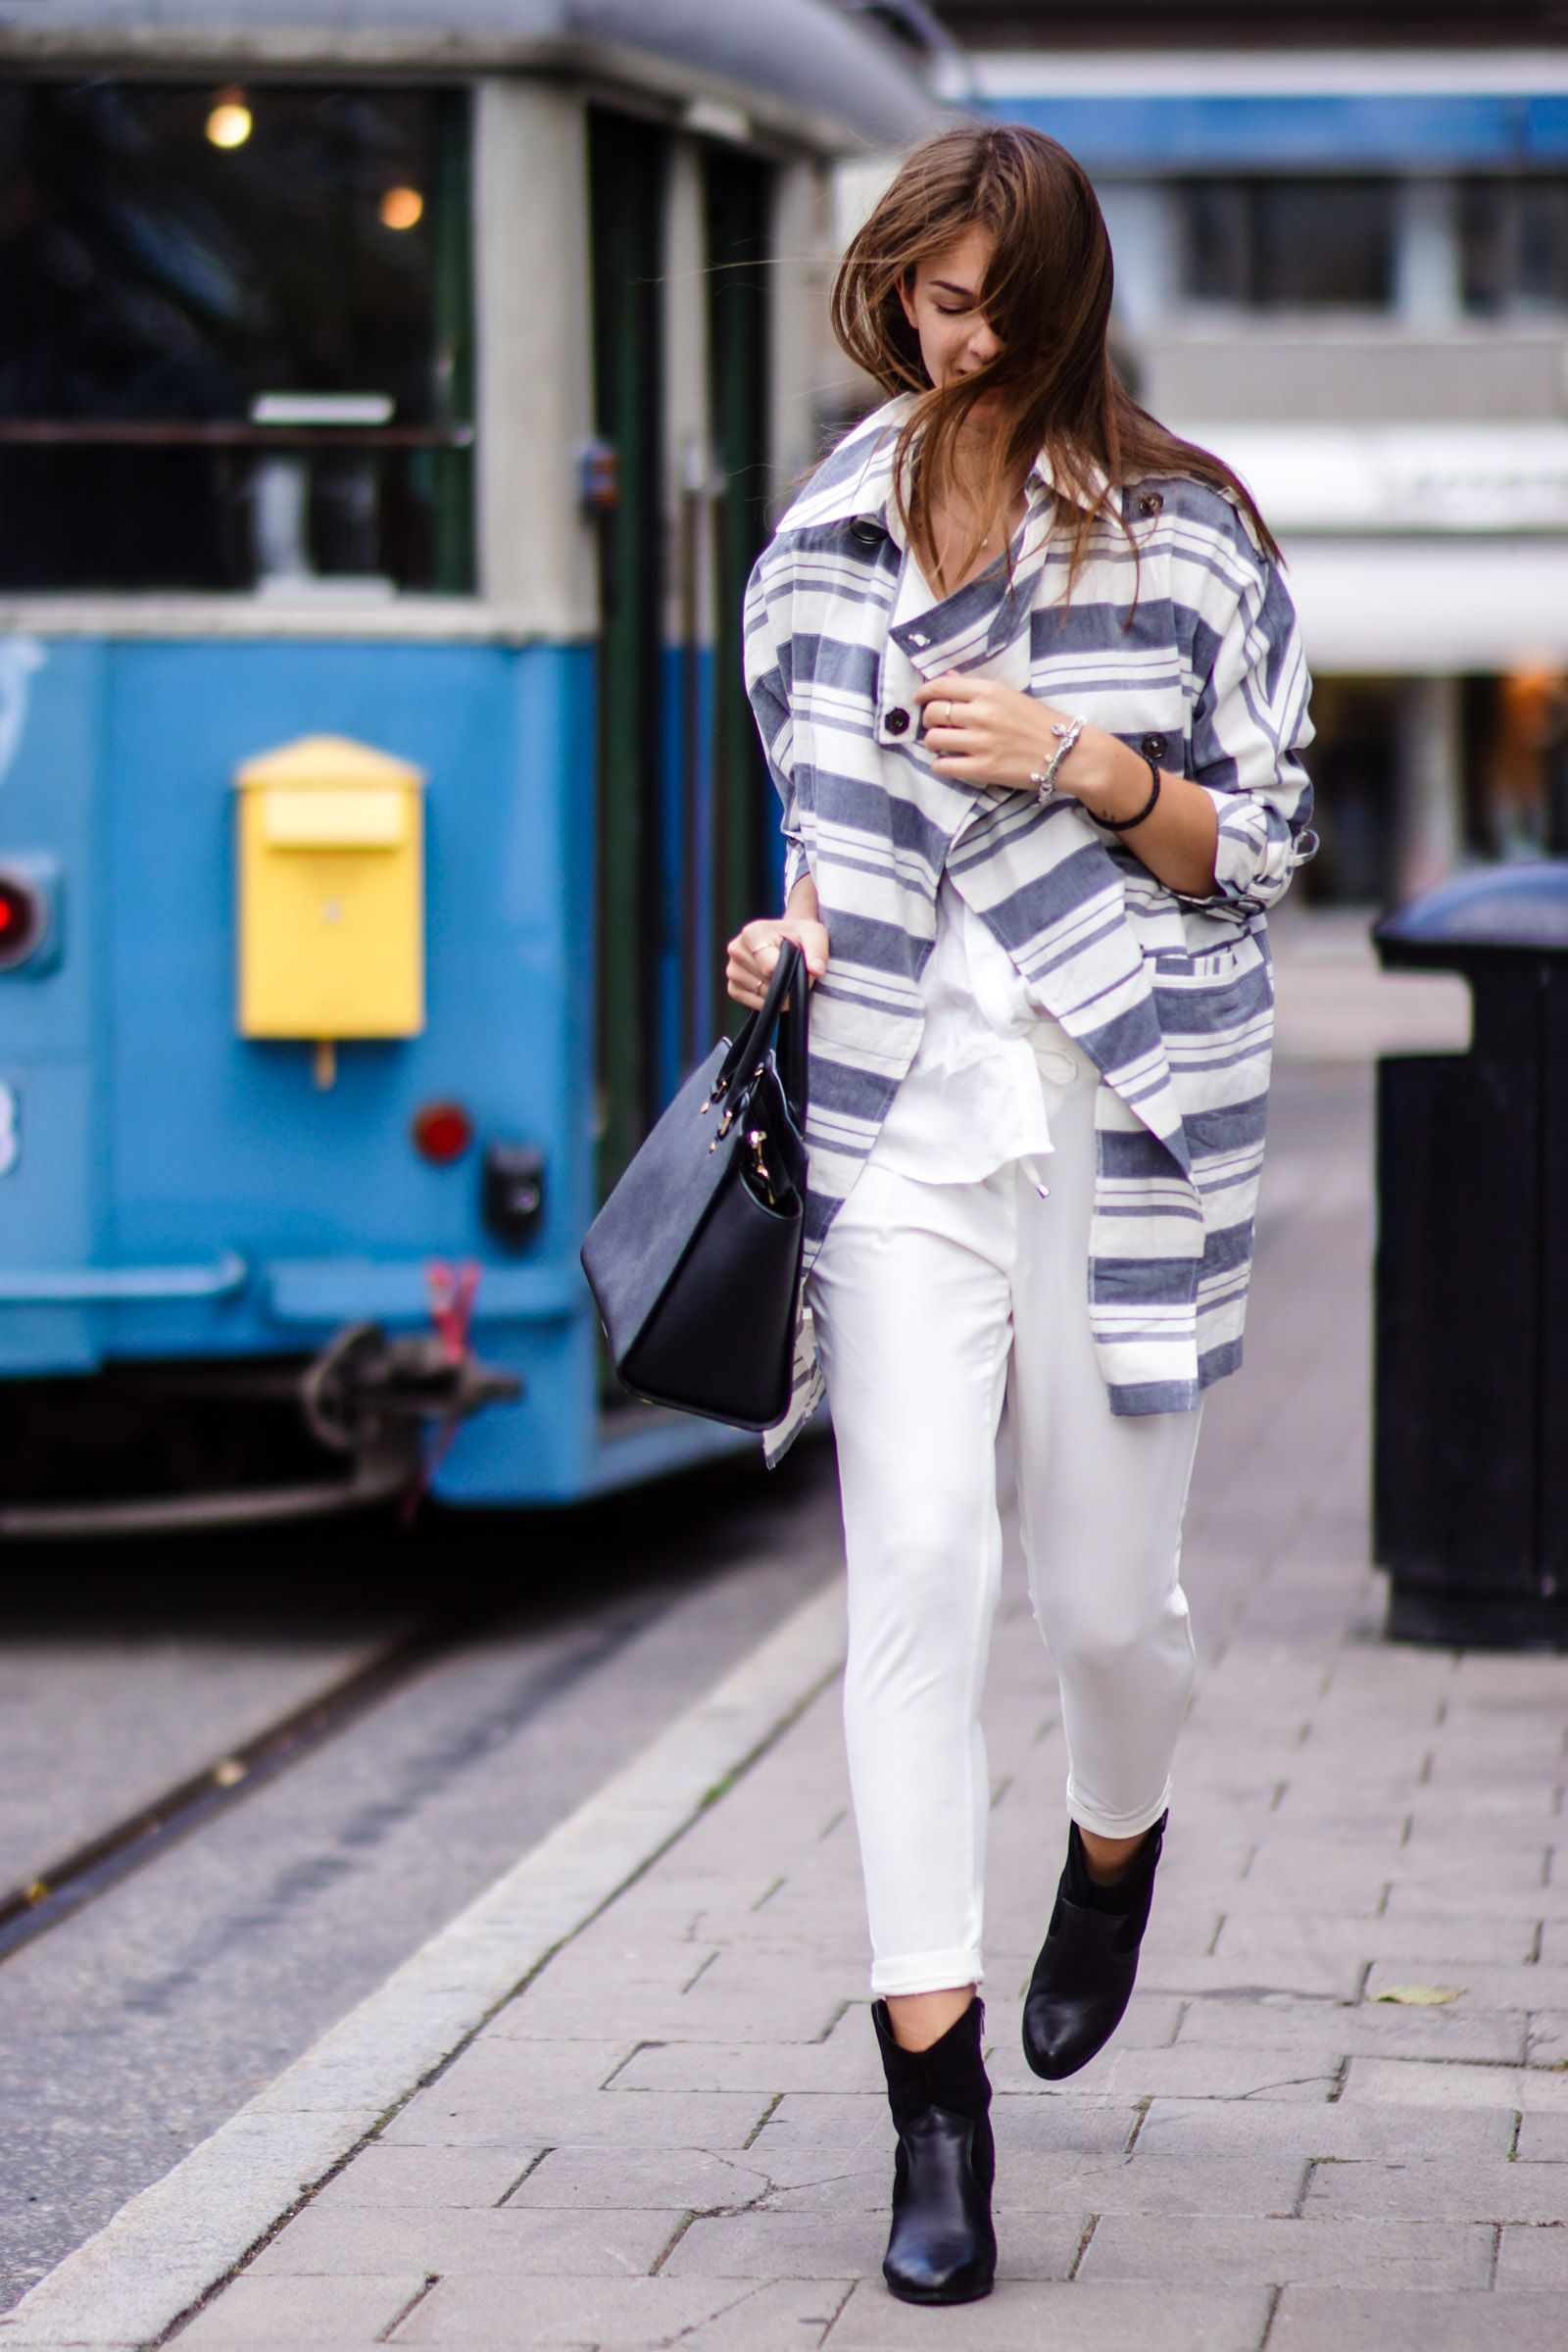 Stockholm Fashion Week Outfit No. 3  #modeblog #fashionblog #whaelse #fashion #streetstyle #summer #outfit #stockholm #fashionweek #travel #allwhite #asos #coat #stripes #striped #boots #richandroyal #whiteshirt #michaelkors #selma